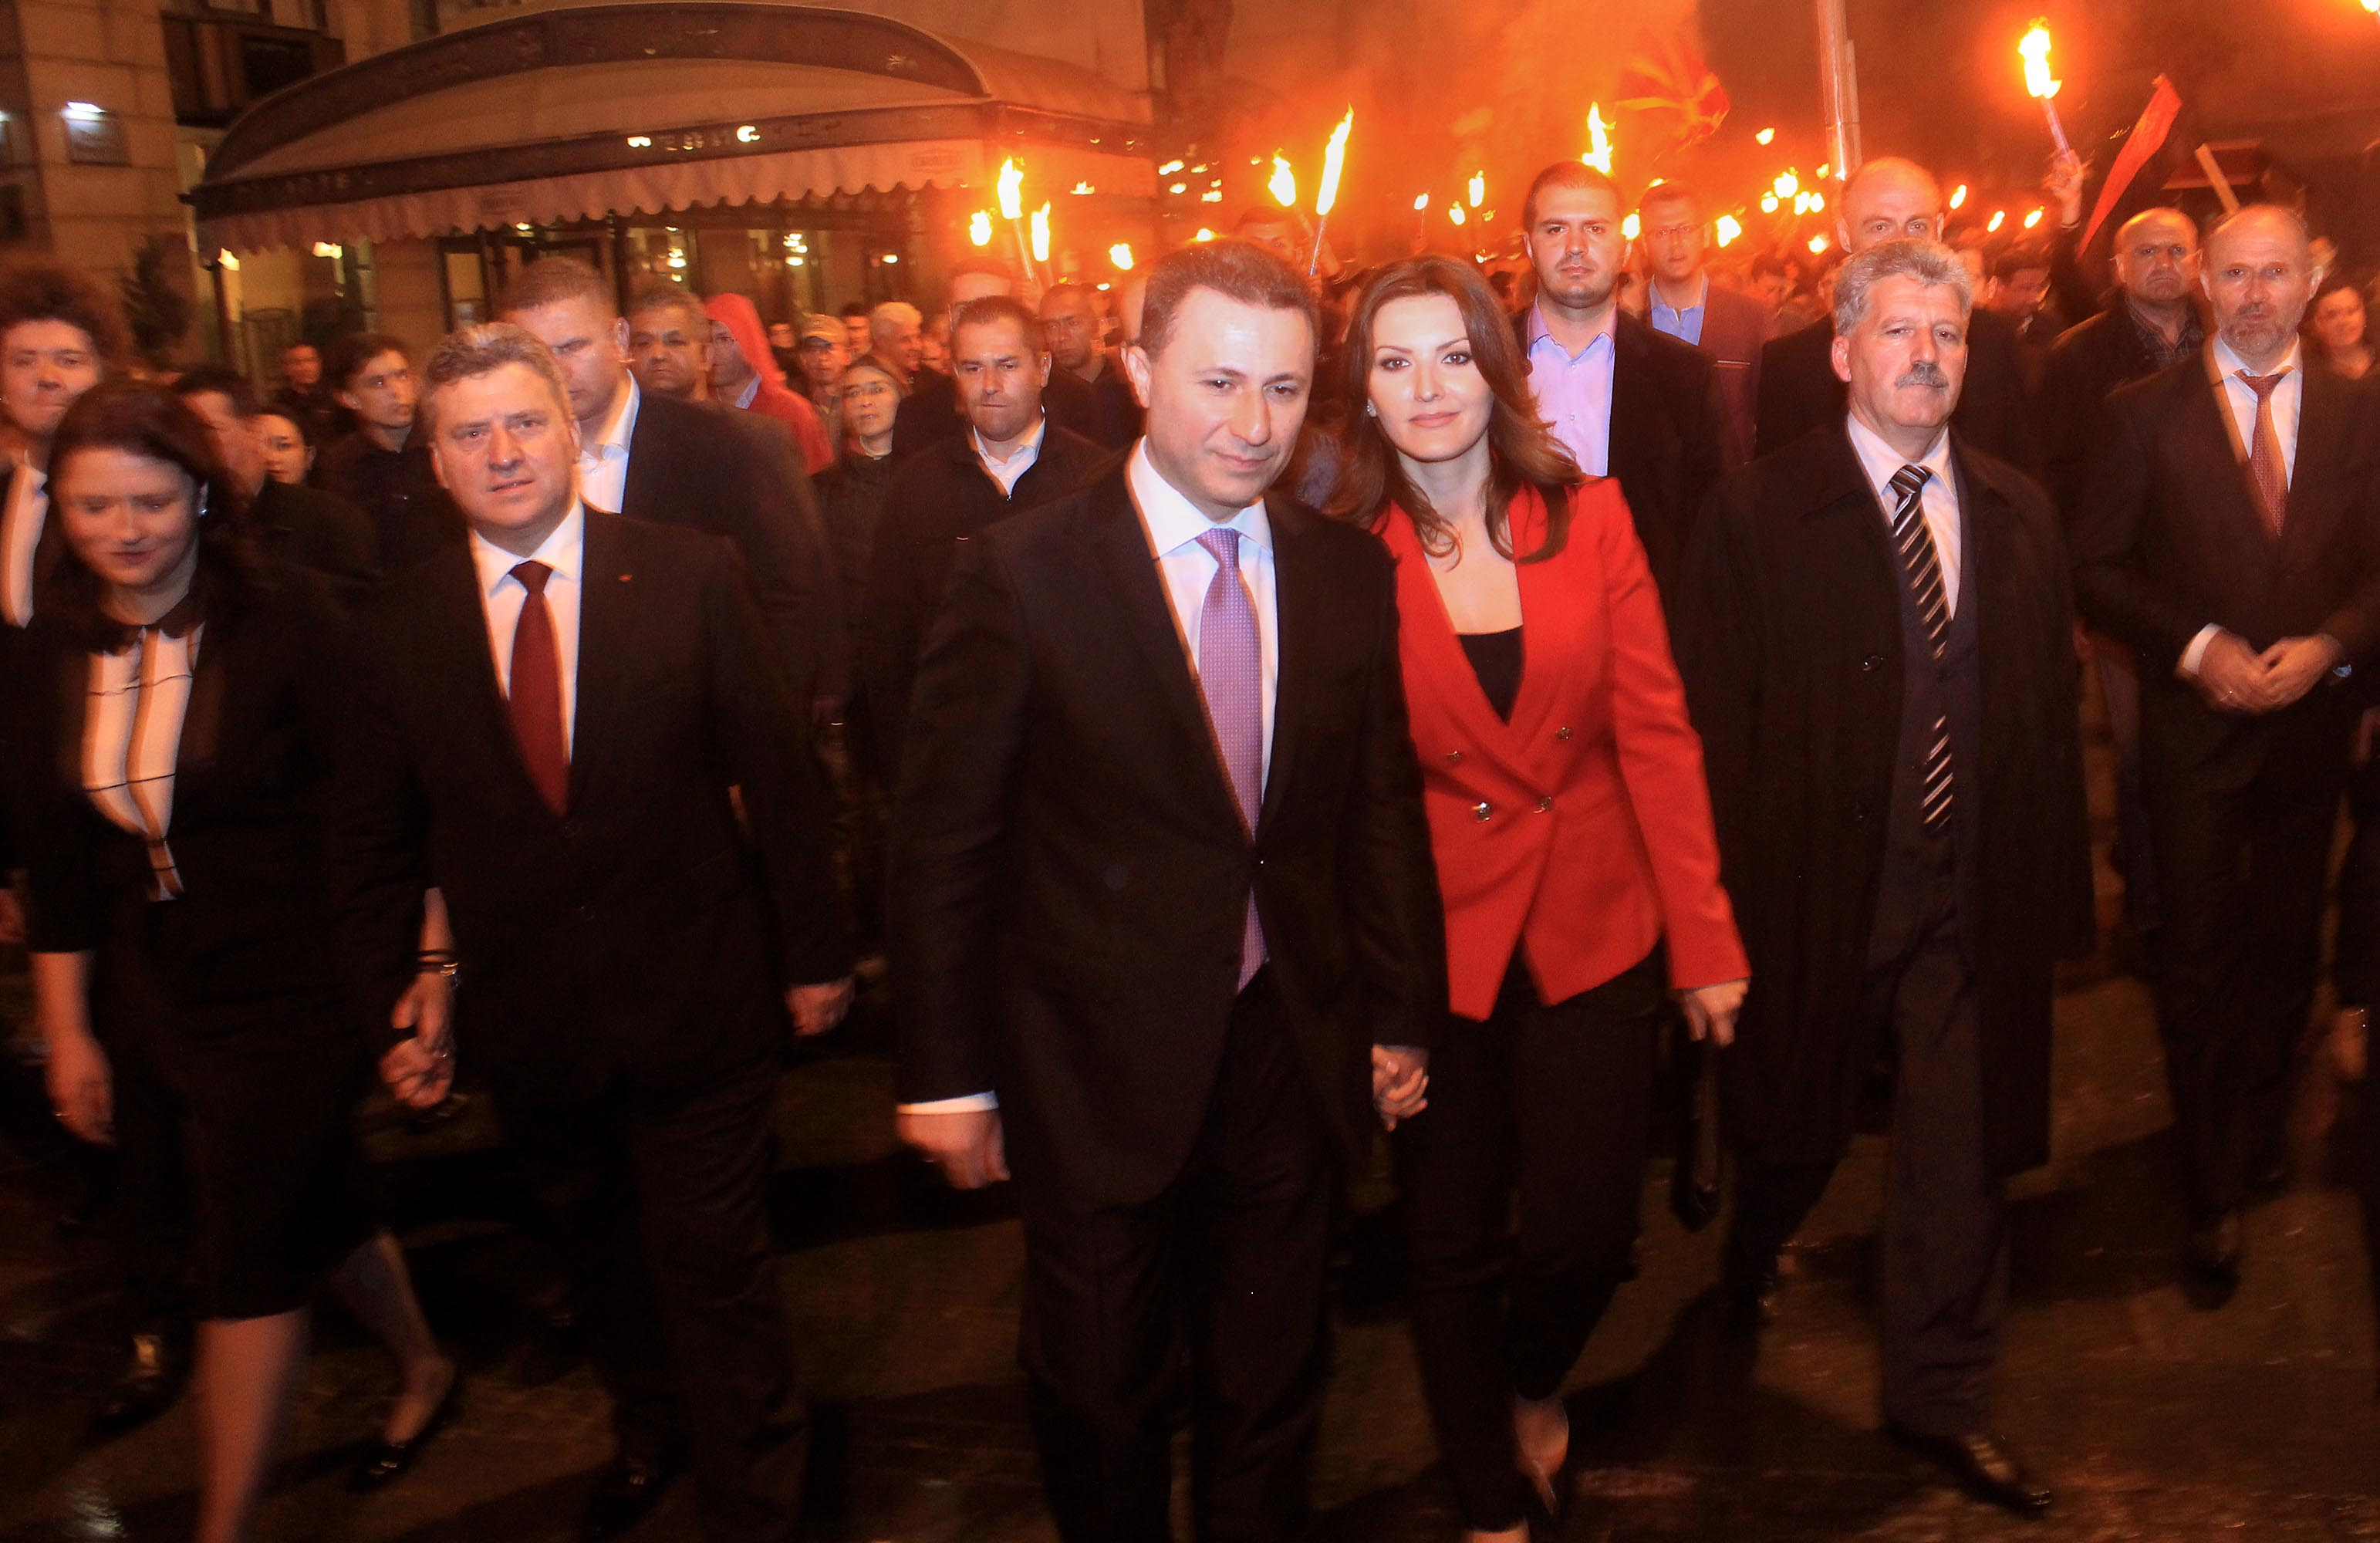 VMRO-DPMNE achieves an absolute victory, what's the new parliamentary composition